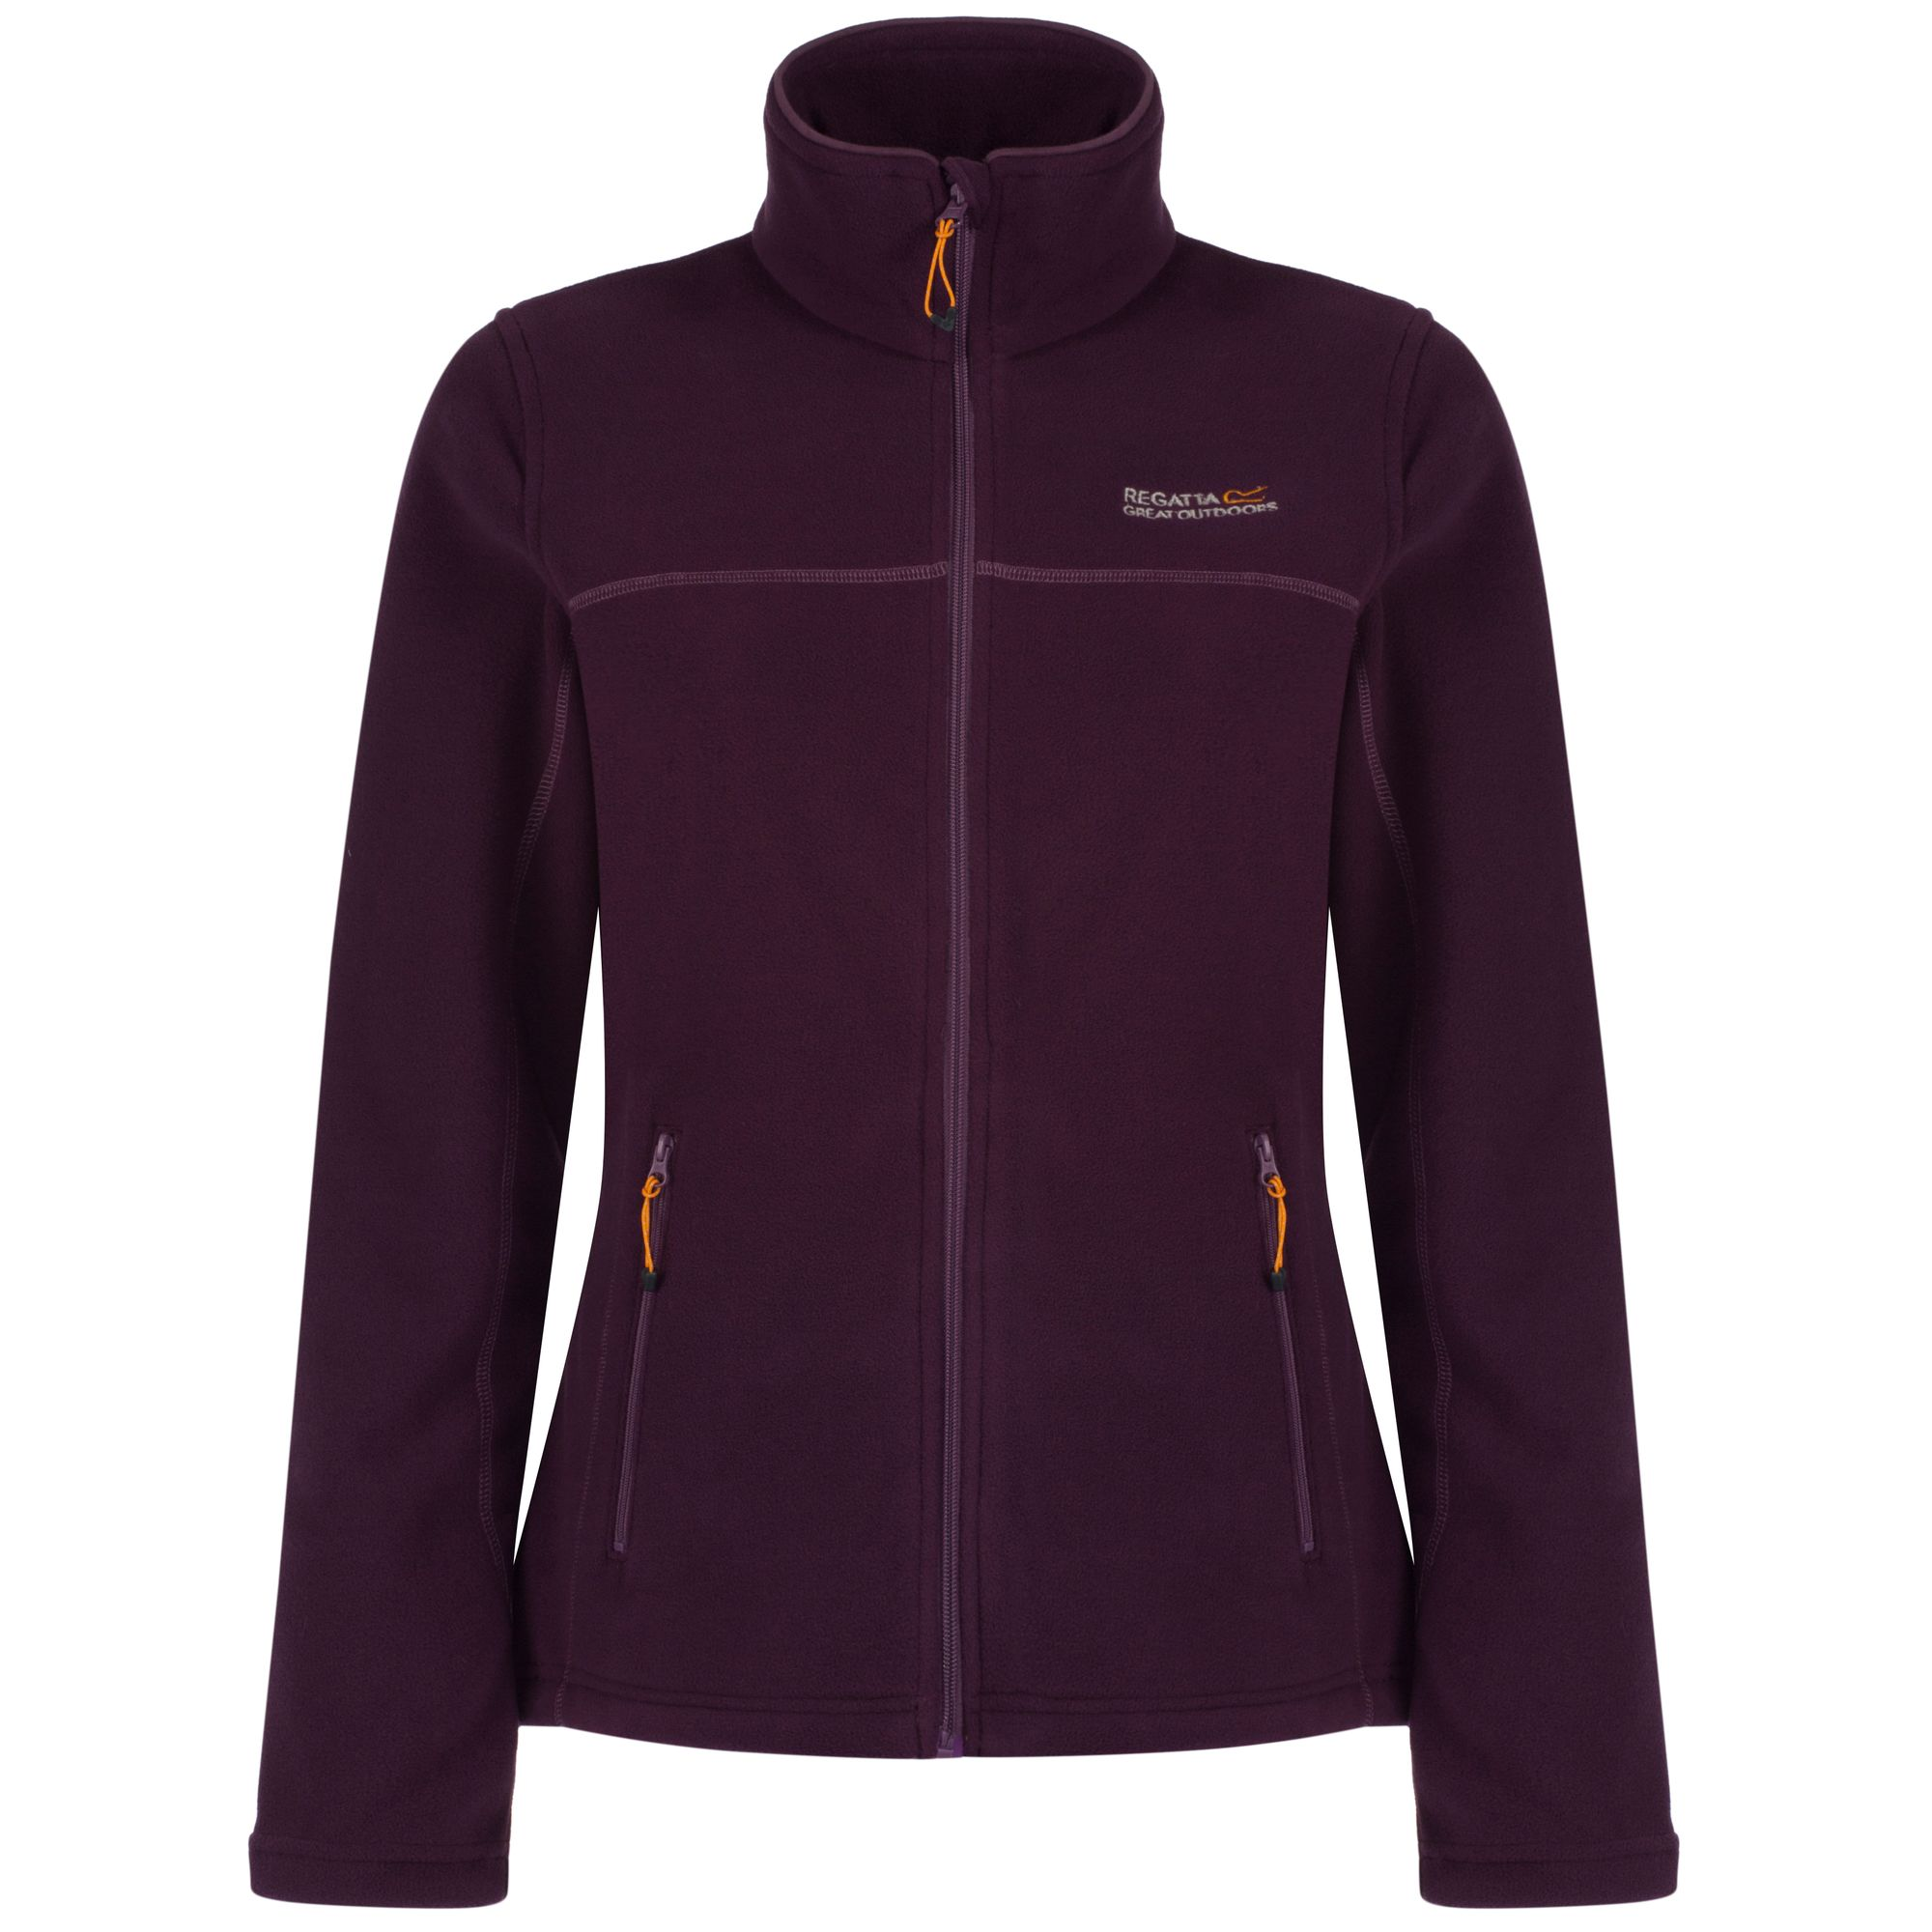 Womens outdoor coat